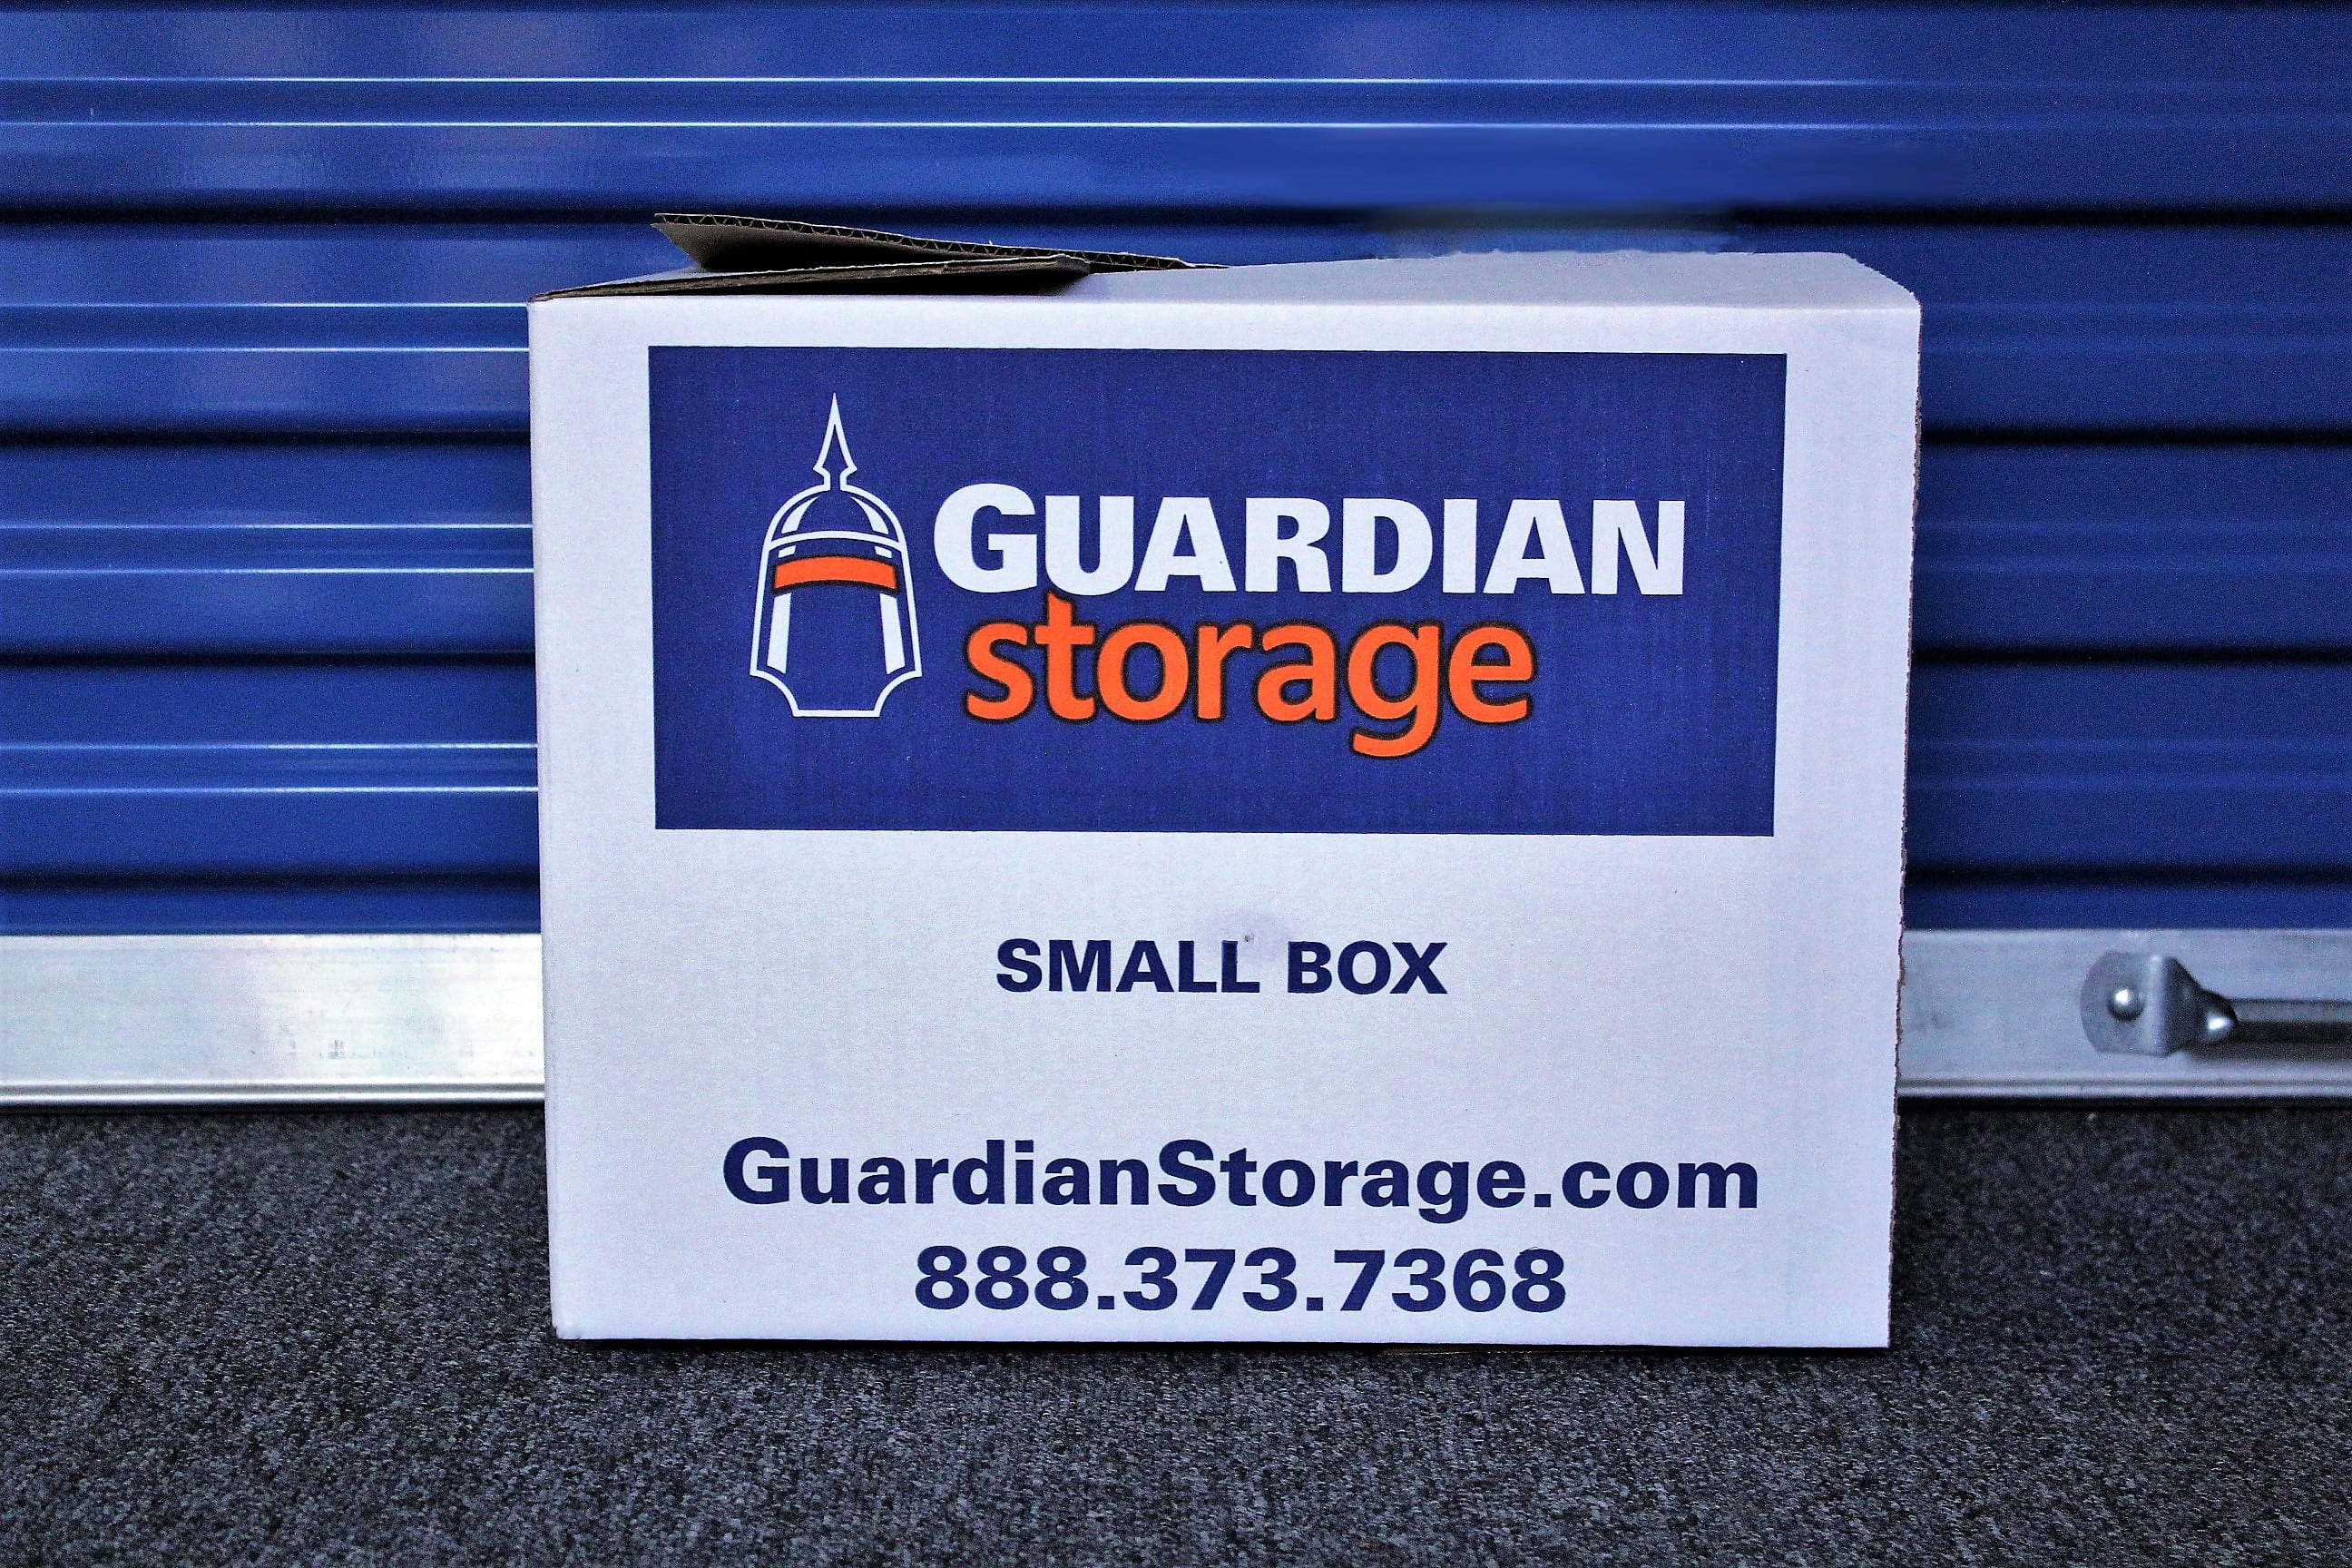 Medium Box Guardian Self Storage Pittsburgh Amp Colorado